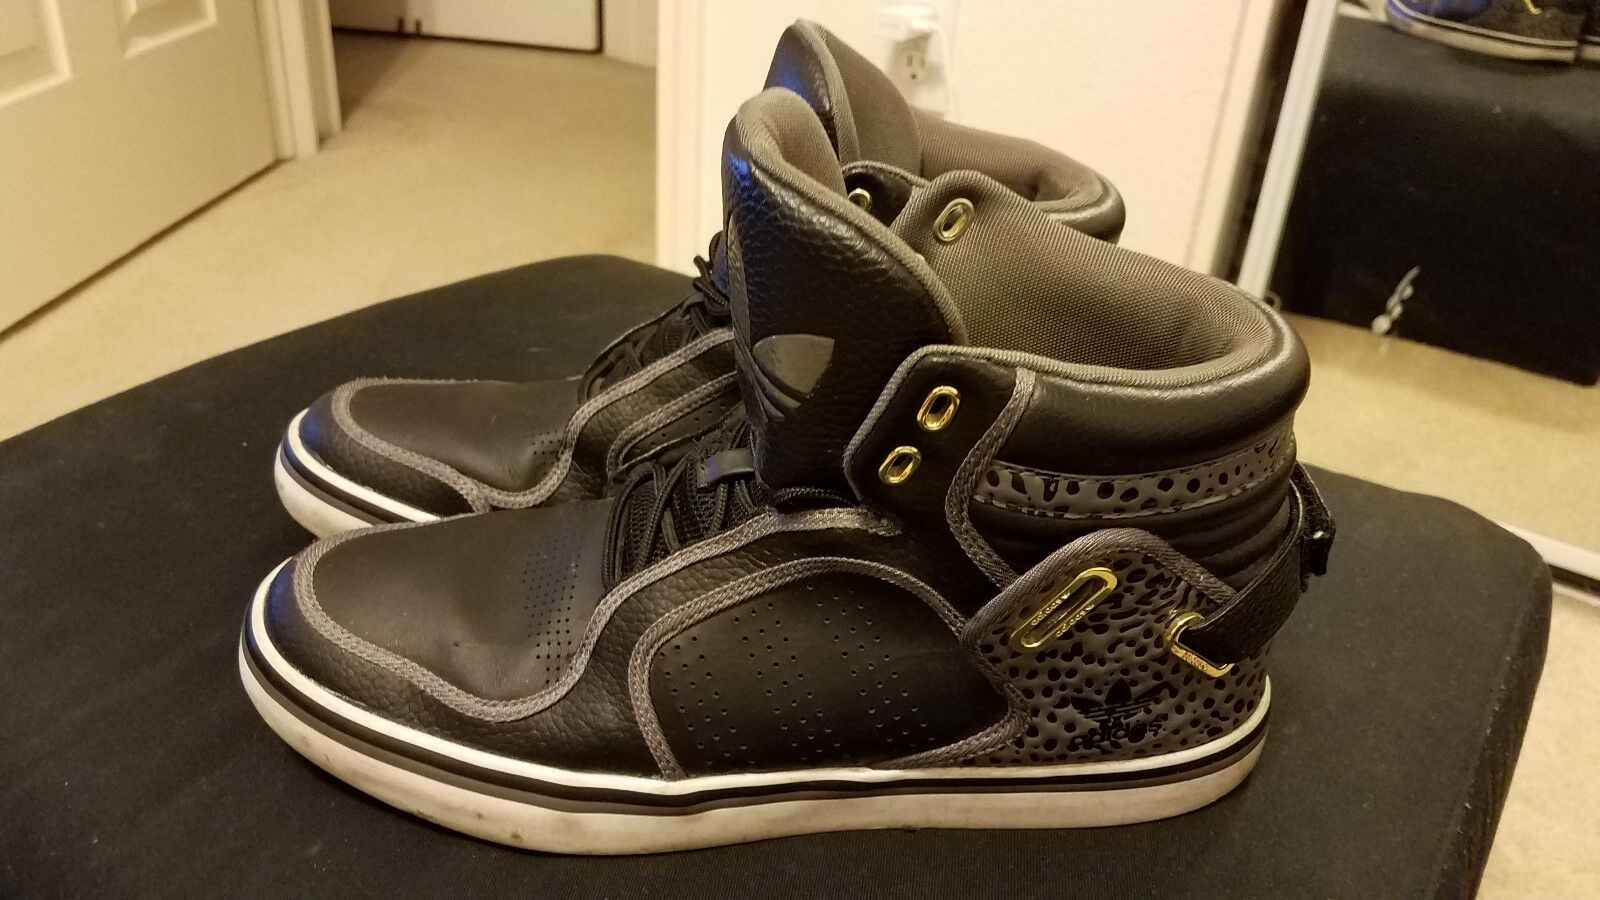 Adidas Originals Adi-Rise Mid Tops Black/White/Grey Sneakers Sz 10 The latest discount shoes for men and women